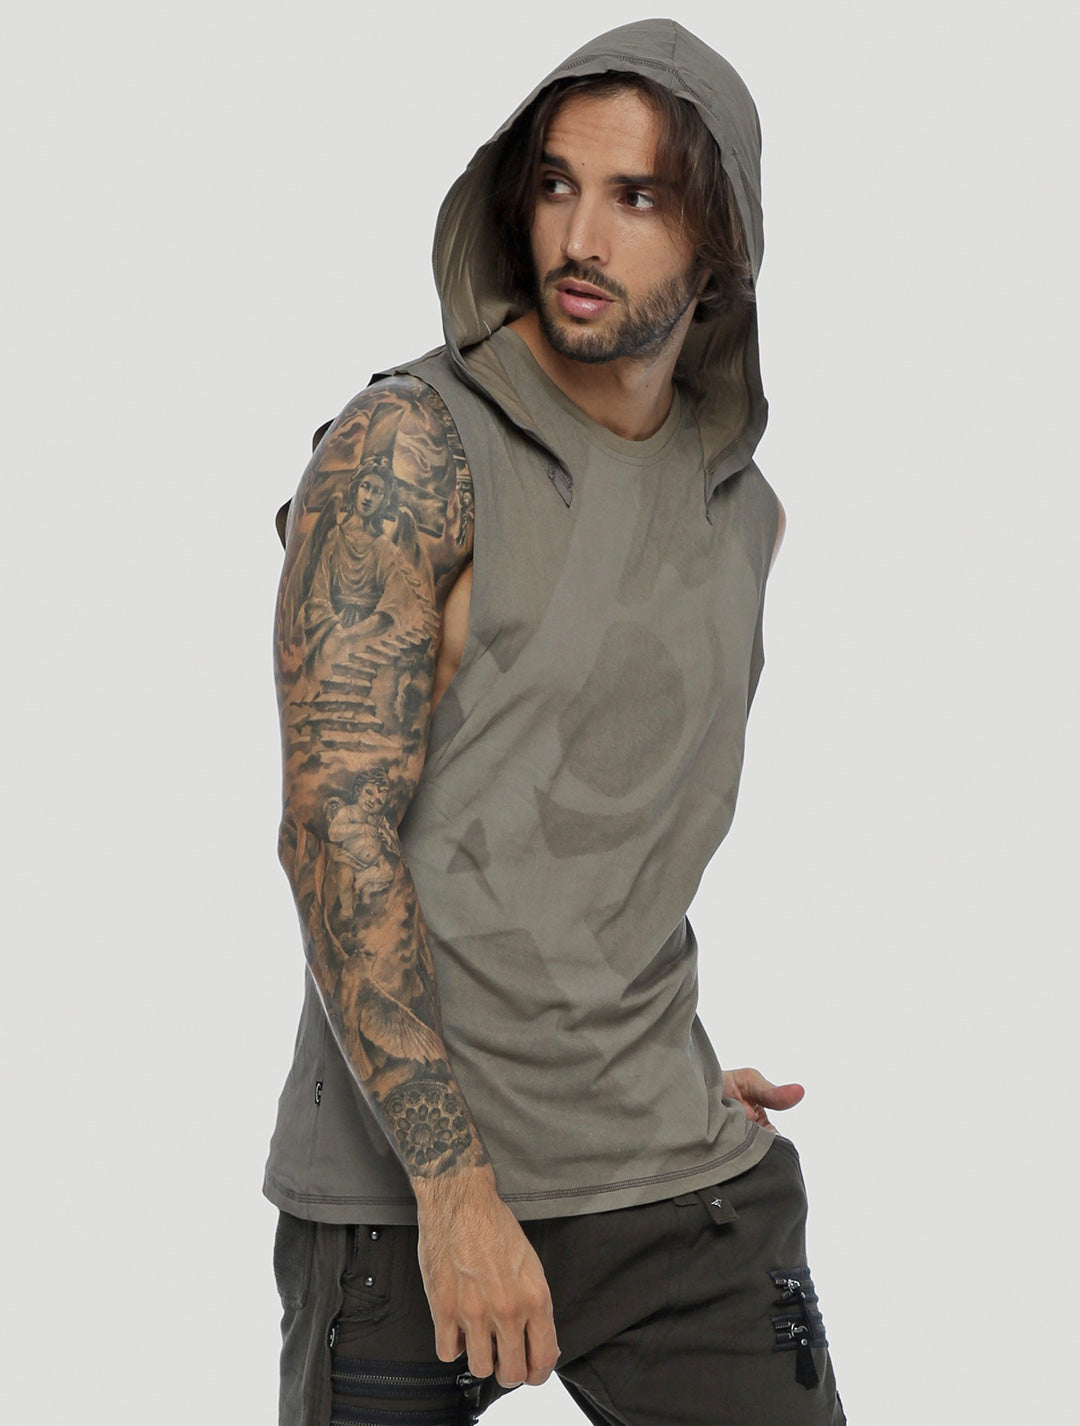 Fearless Hoodie Singlet Psylo Fashion Ethical Streetwear